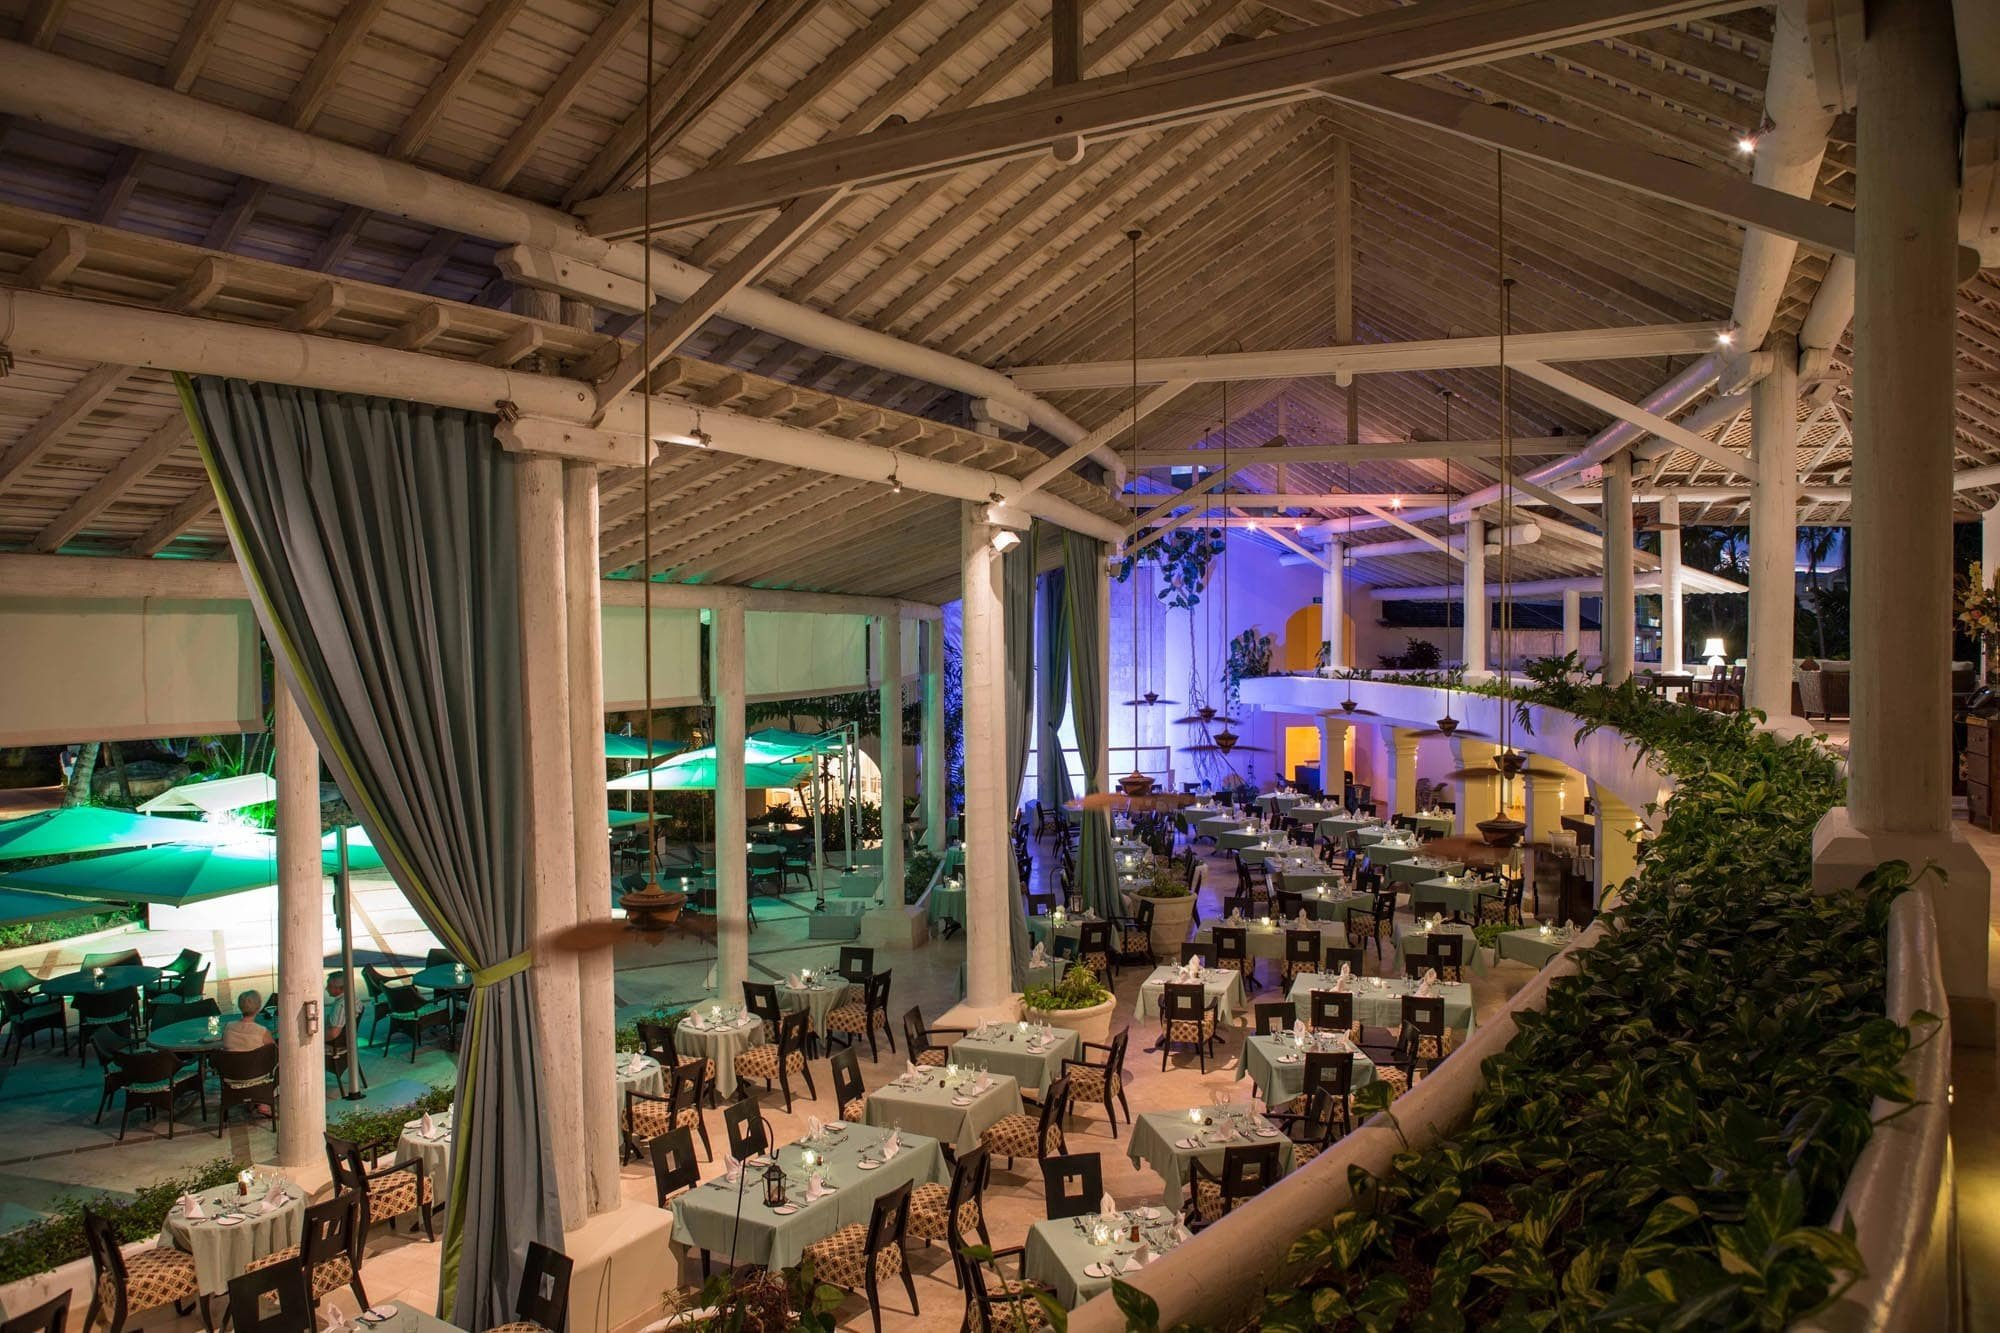 All-Inclusive Resorts Hotels building indoor ceiling Resort leisure restaurant line roof several